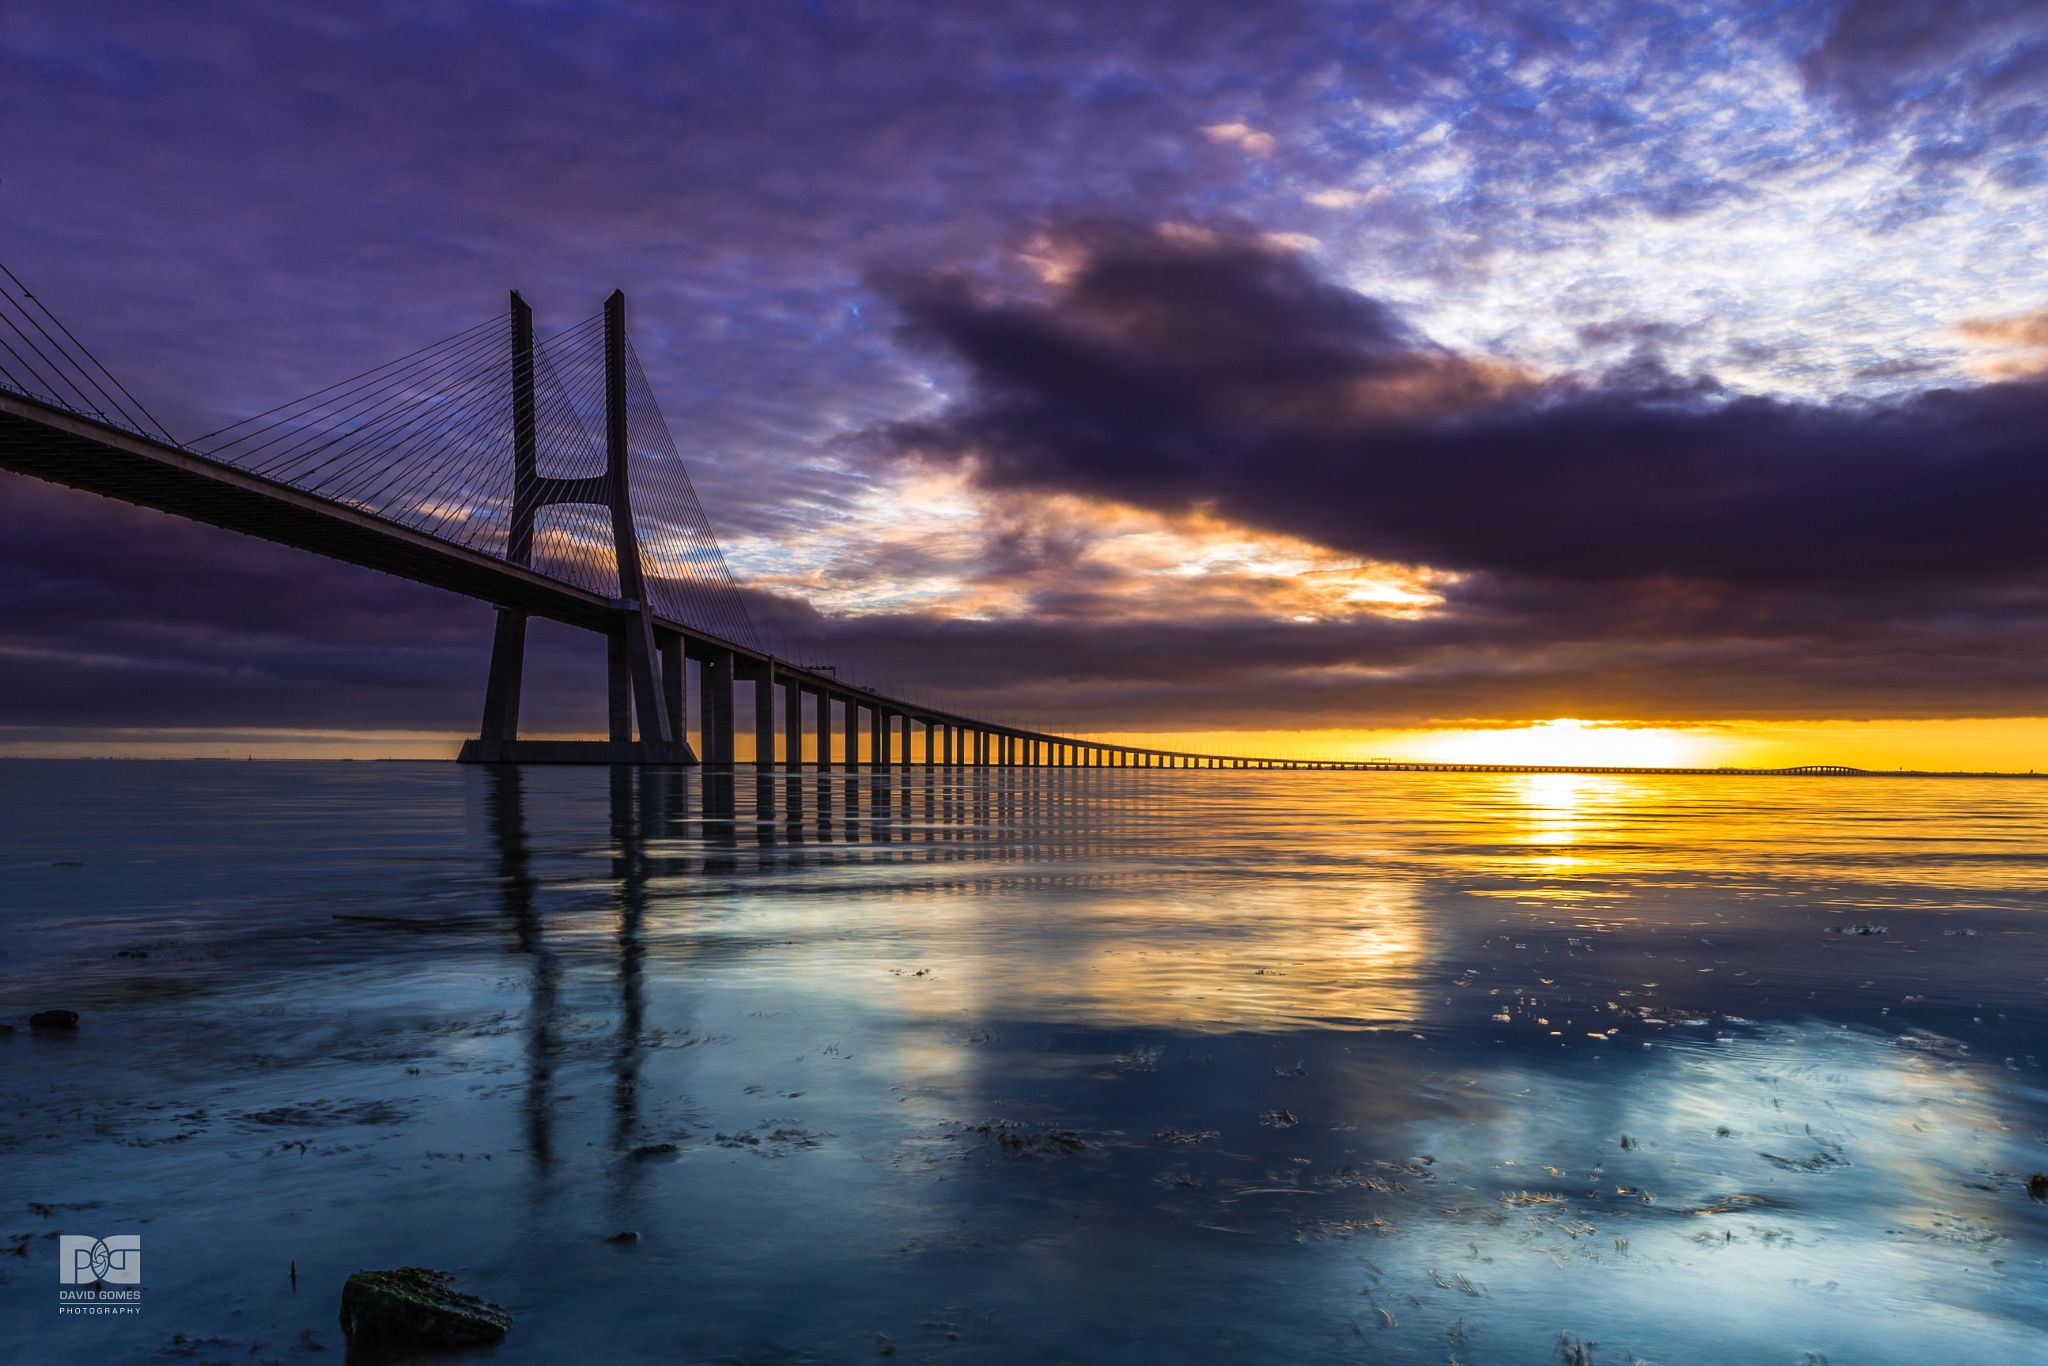 Before the Rain ~ Portugal by David Gomes on 500px